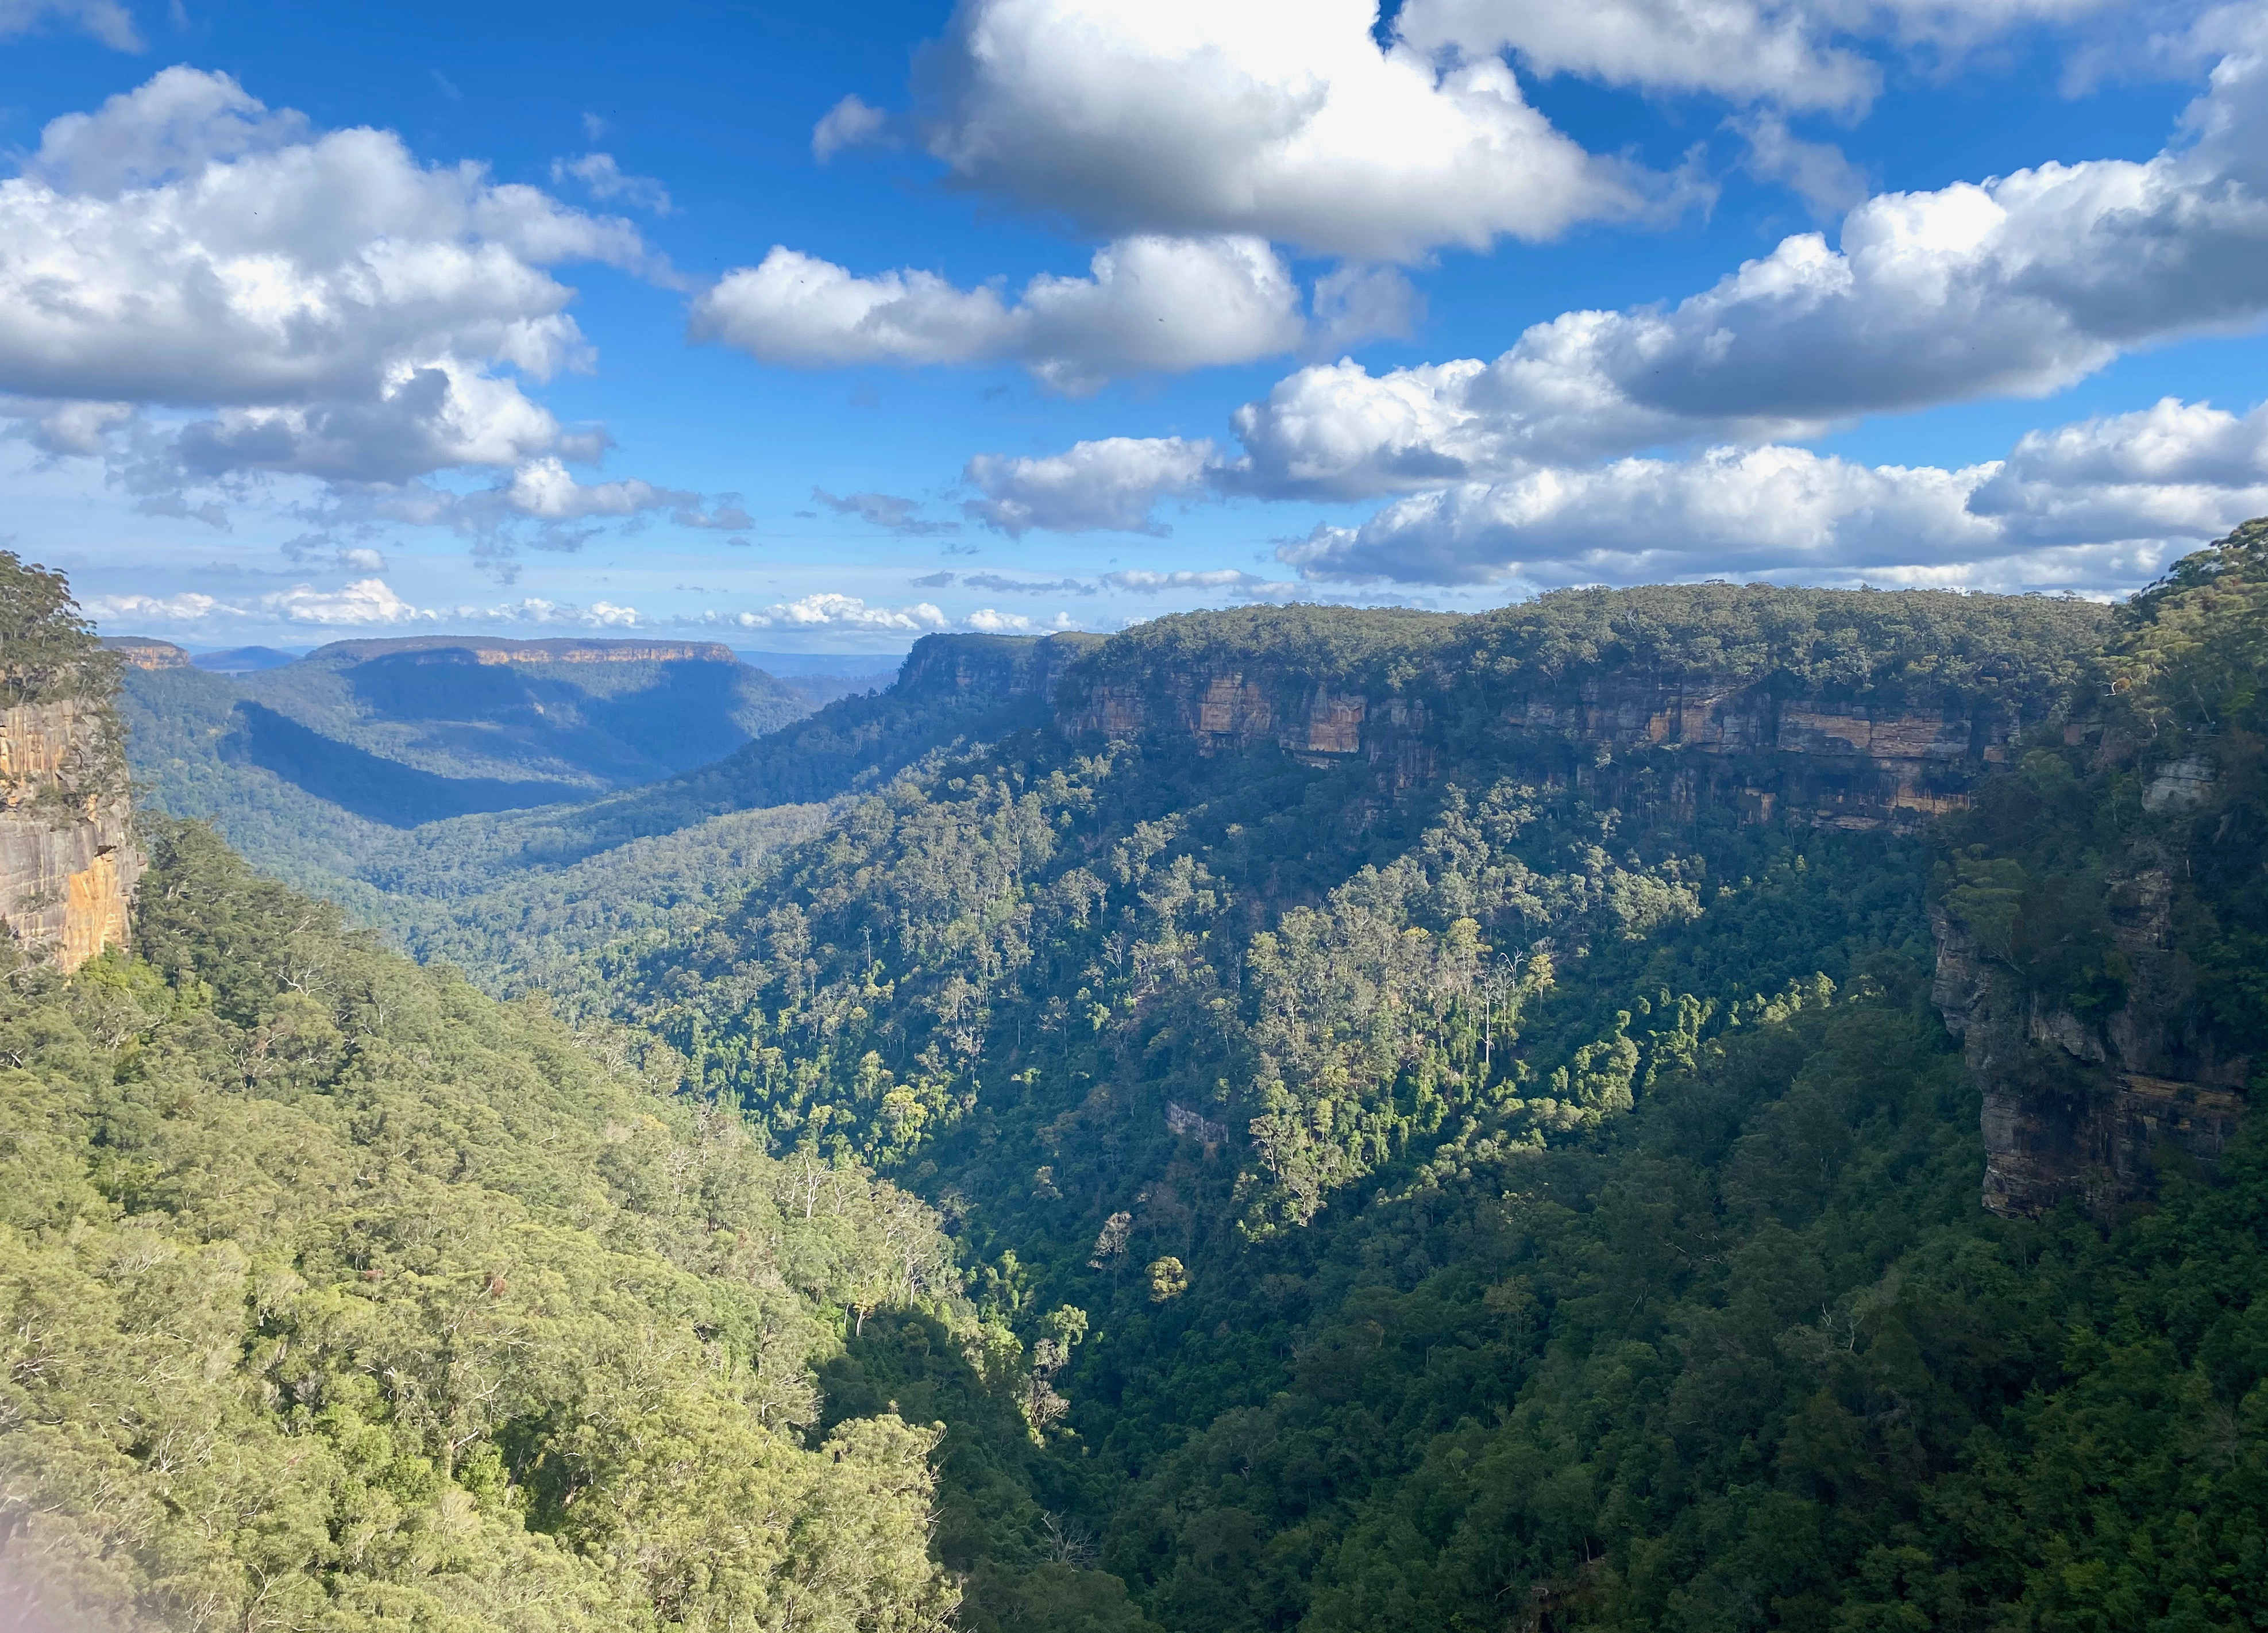 Kangaroo Valley: Top Sights from this Scenic Getaway